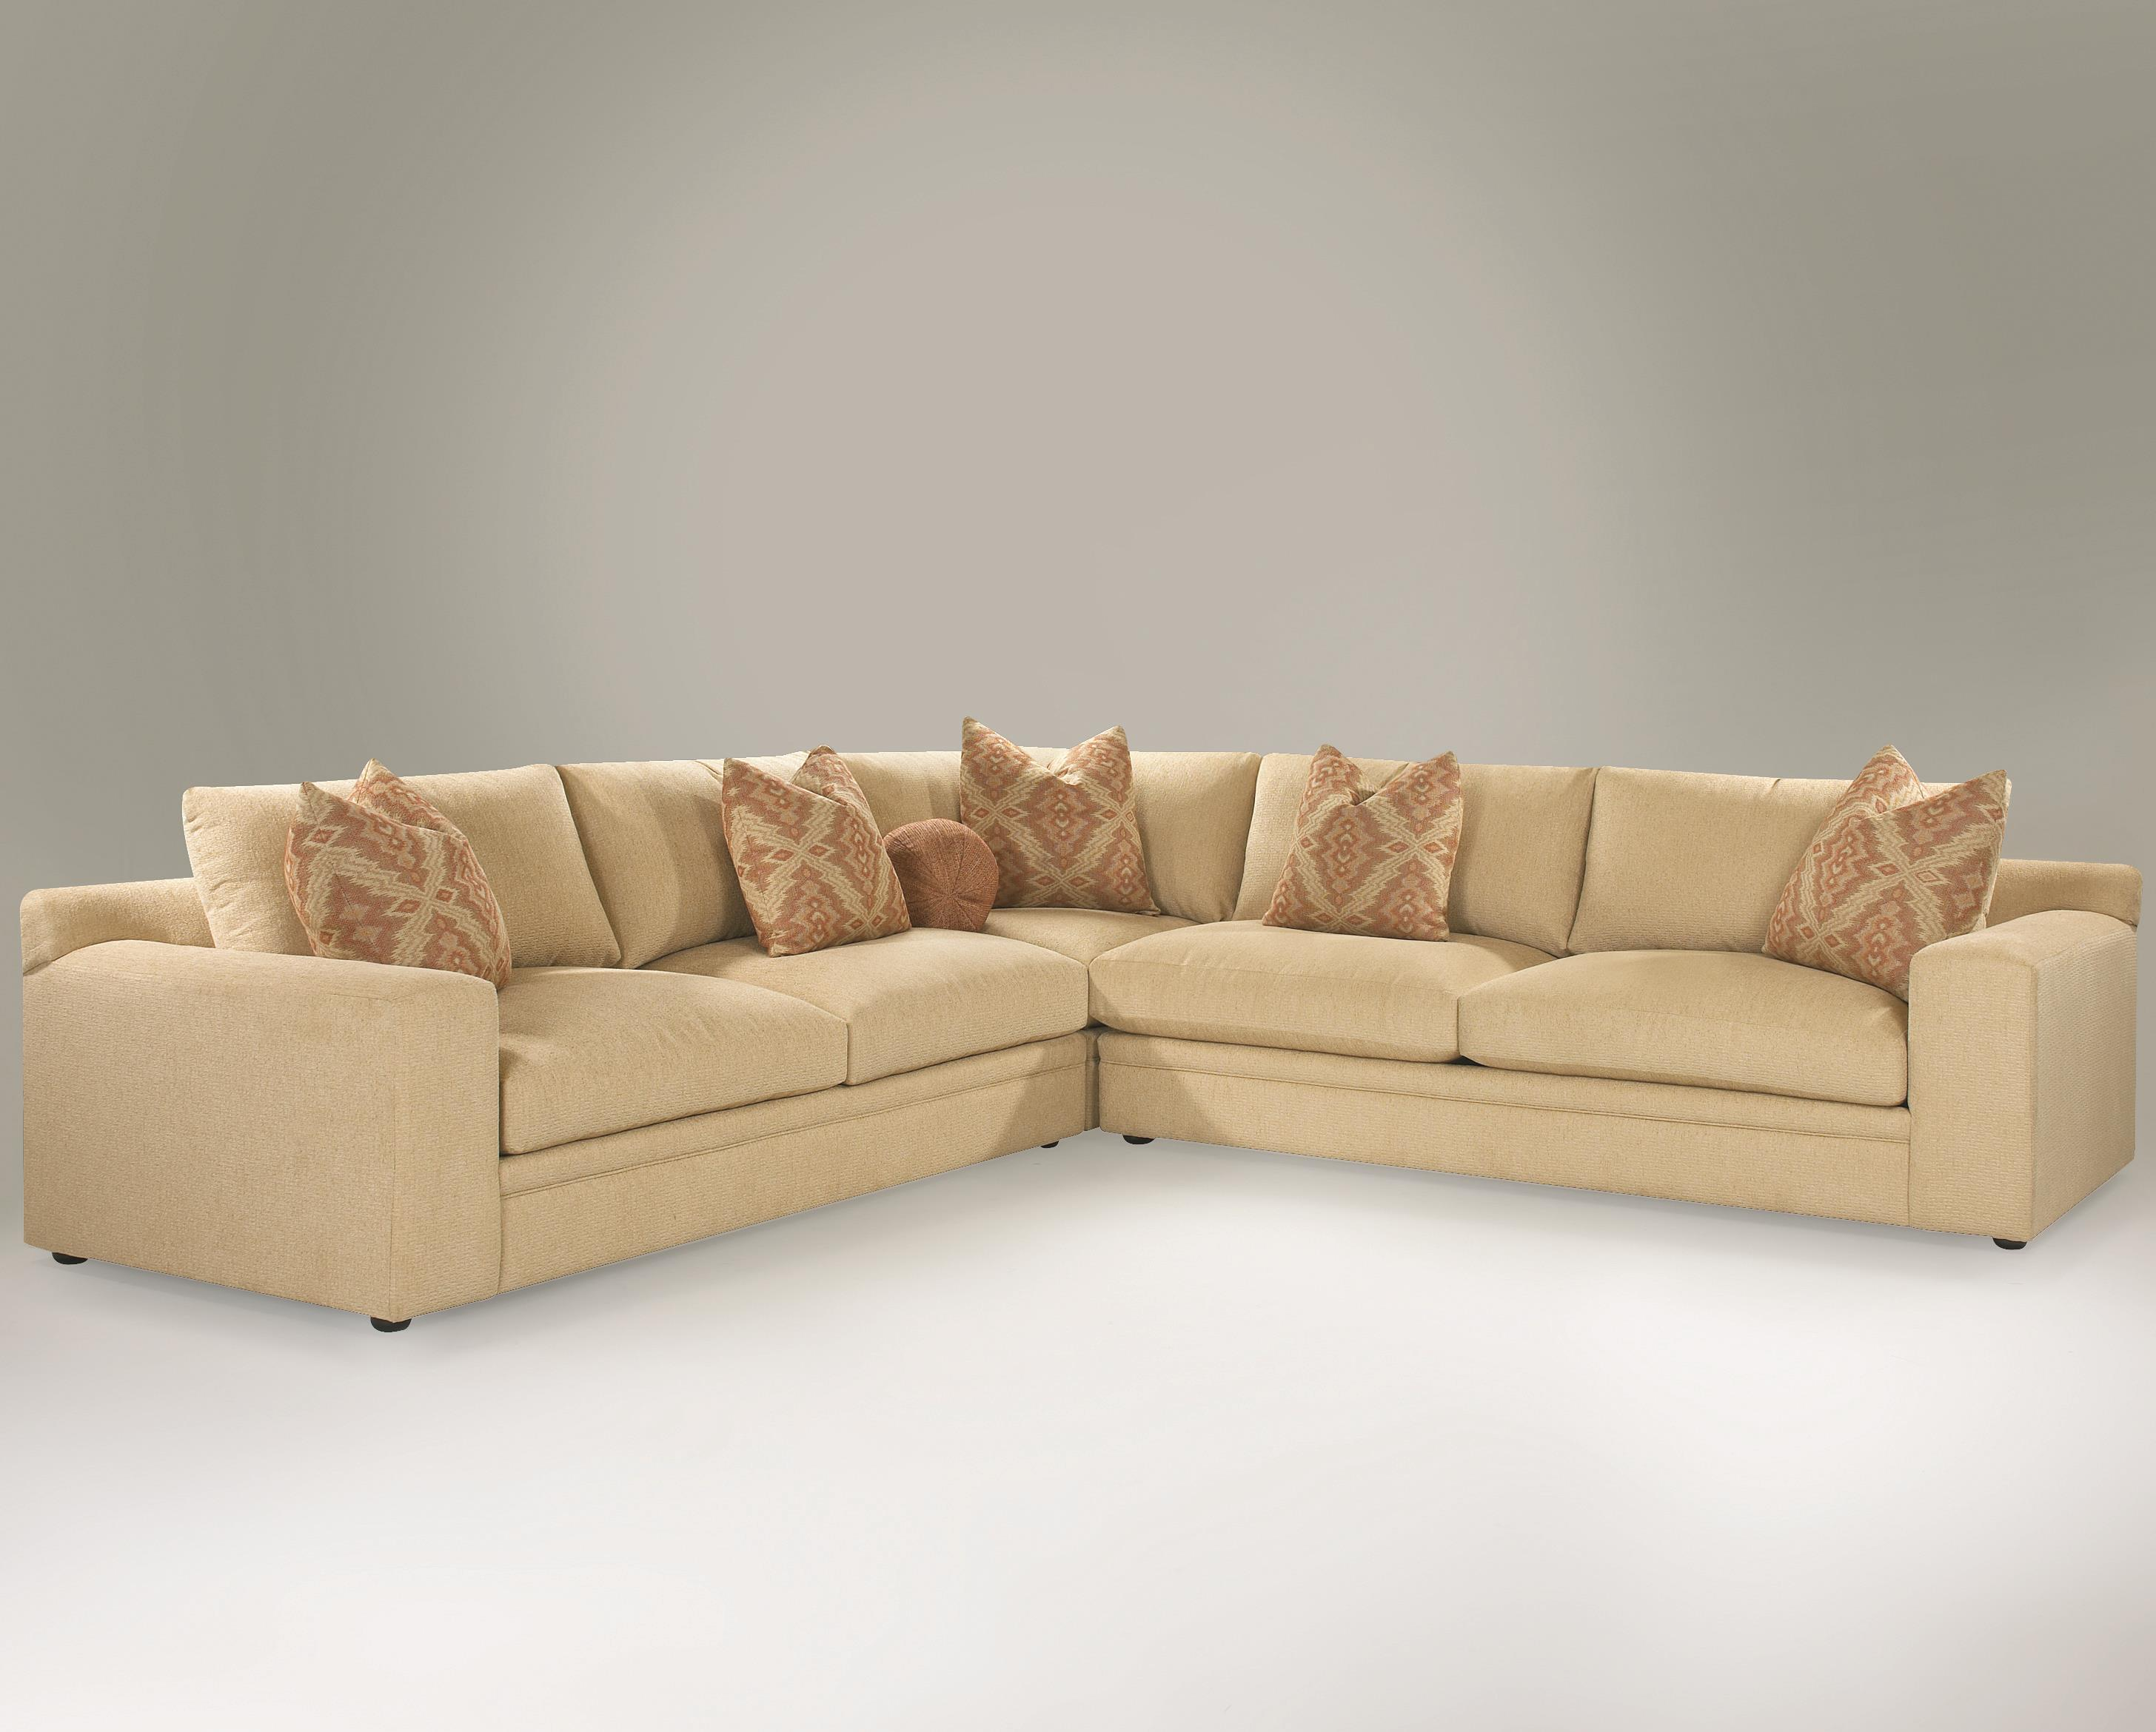 Klaussner Casa Mesa Casual 3 Piece Sectional Sofa with Track Arms